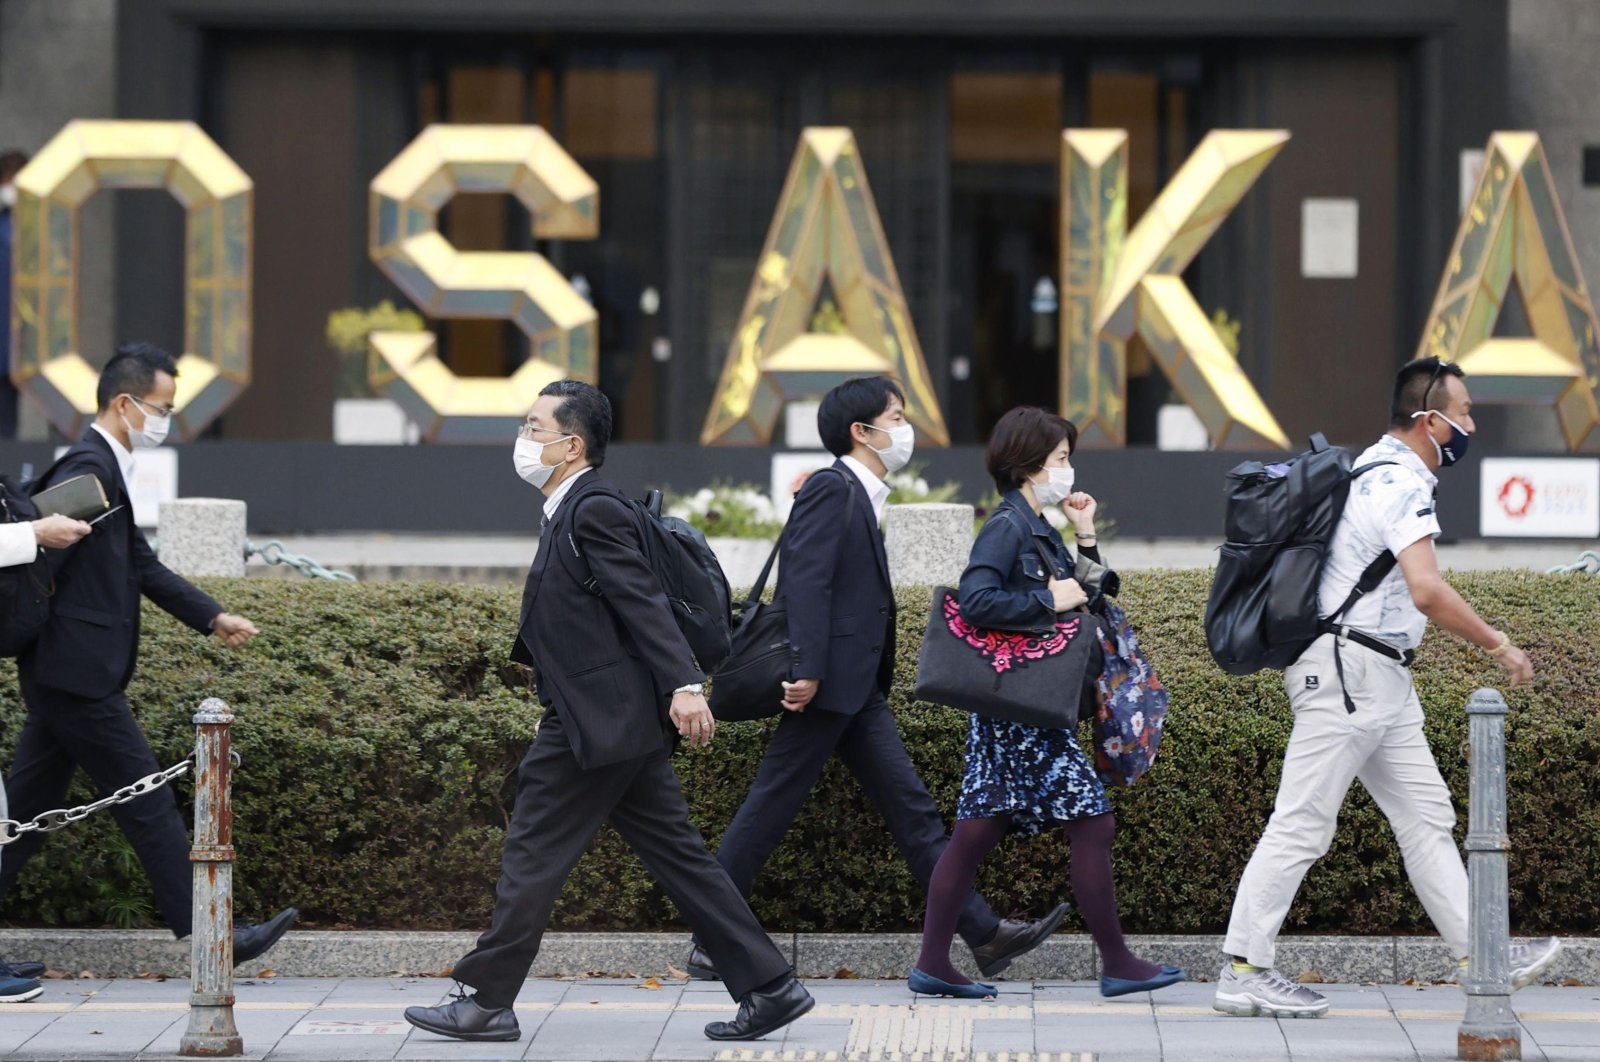 People wearing face masks to help curb the spread of the coronavirus walk in Osaka, western Japan, Friday, April 2, 2021. (AP Photo)